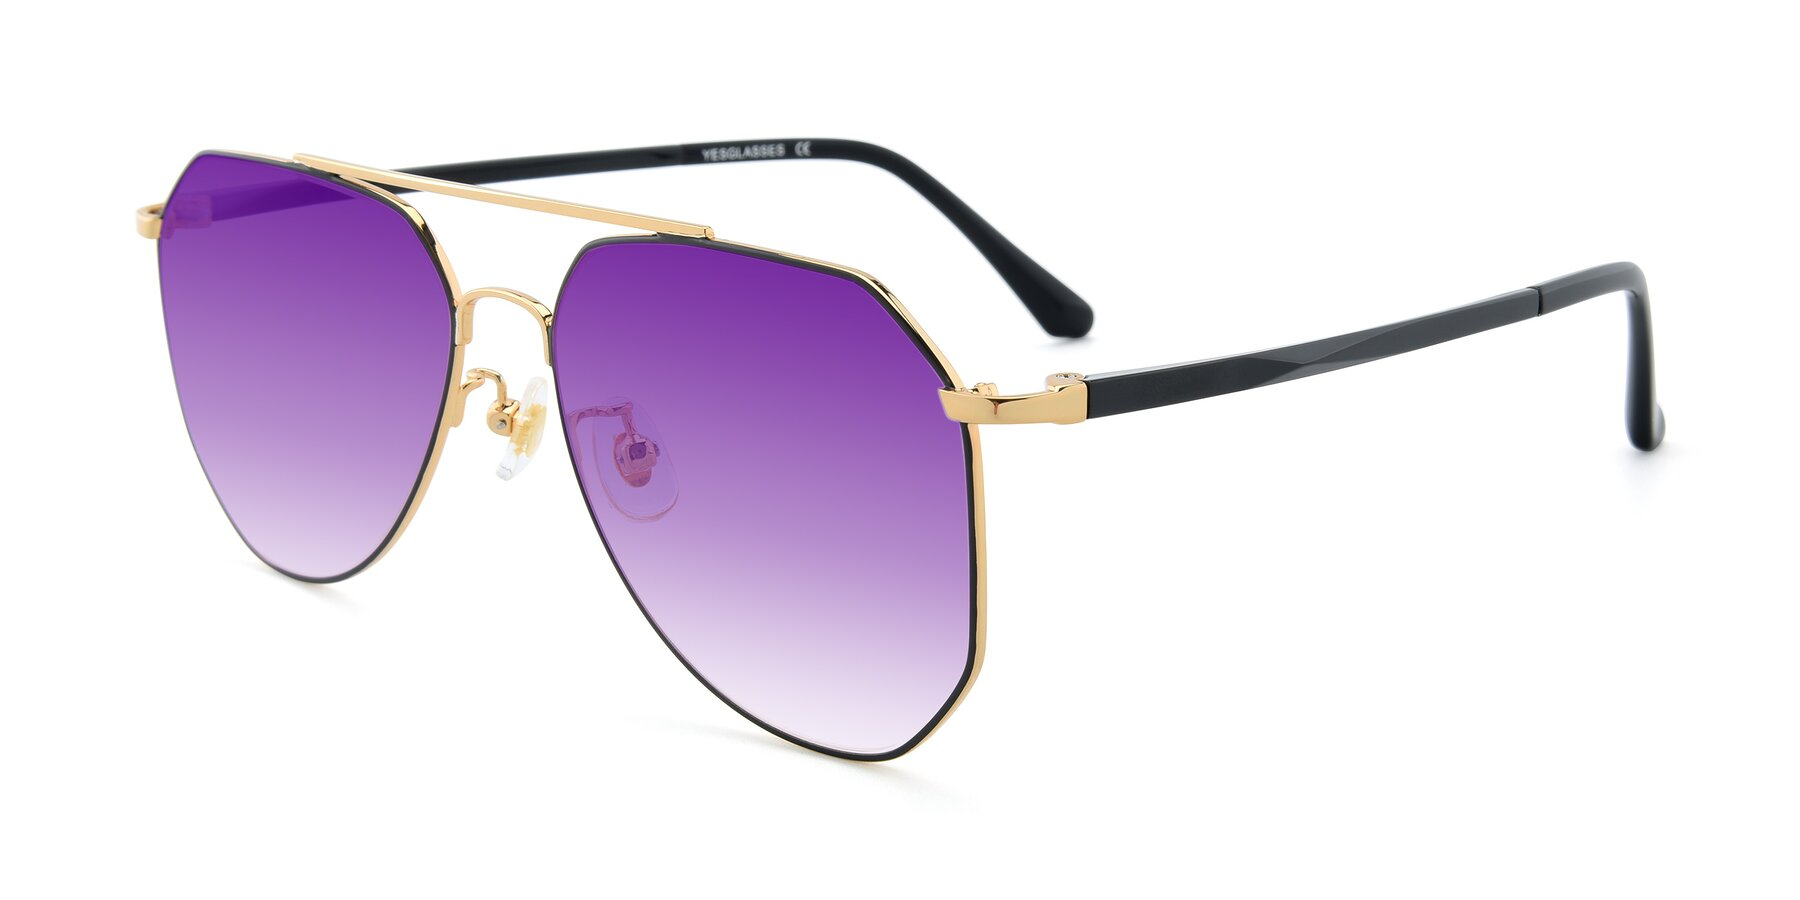 Angle of XC-8040 in Black/ Gold with Purple Gradient Lenses